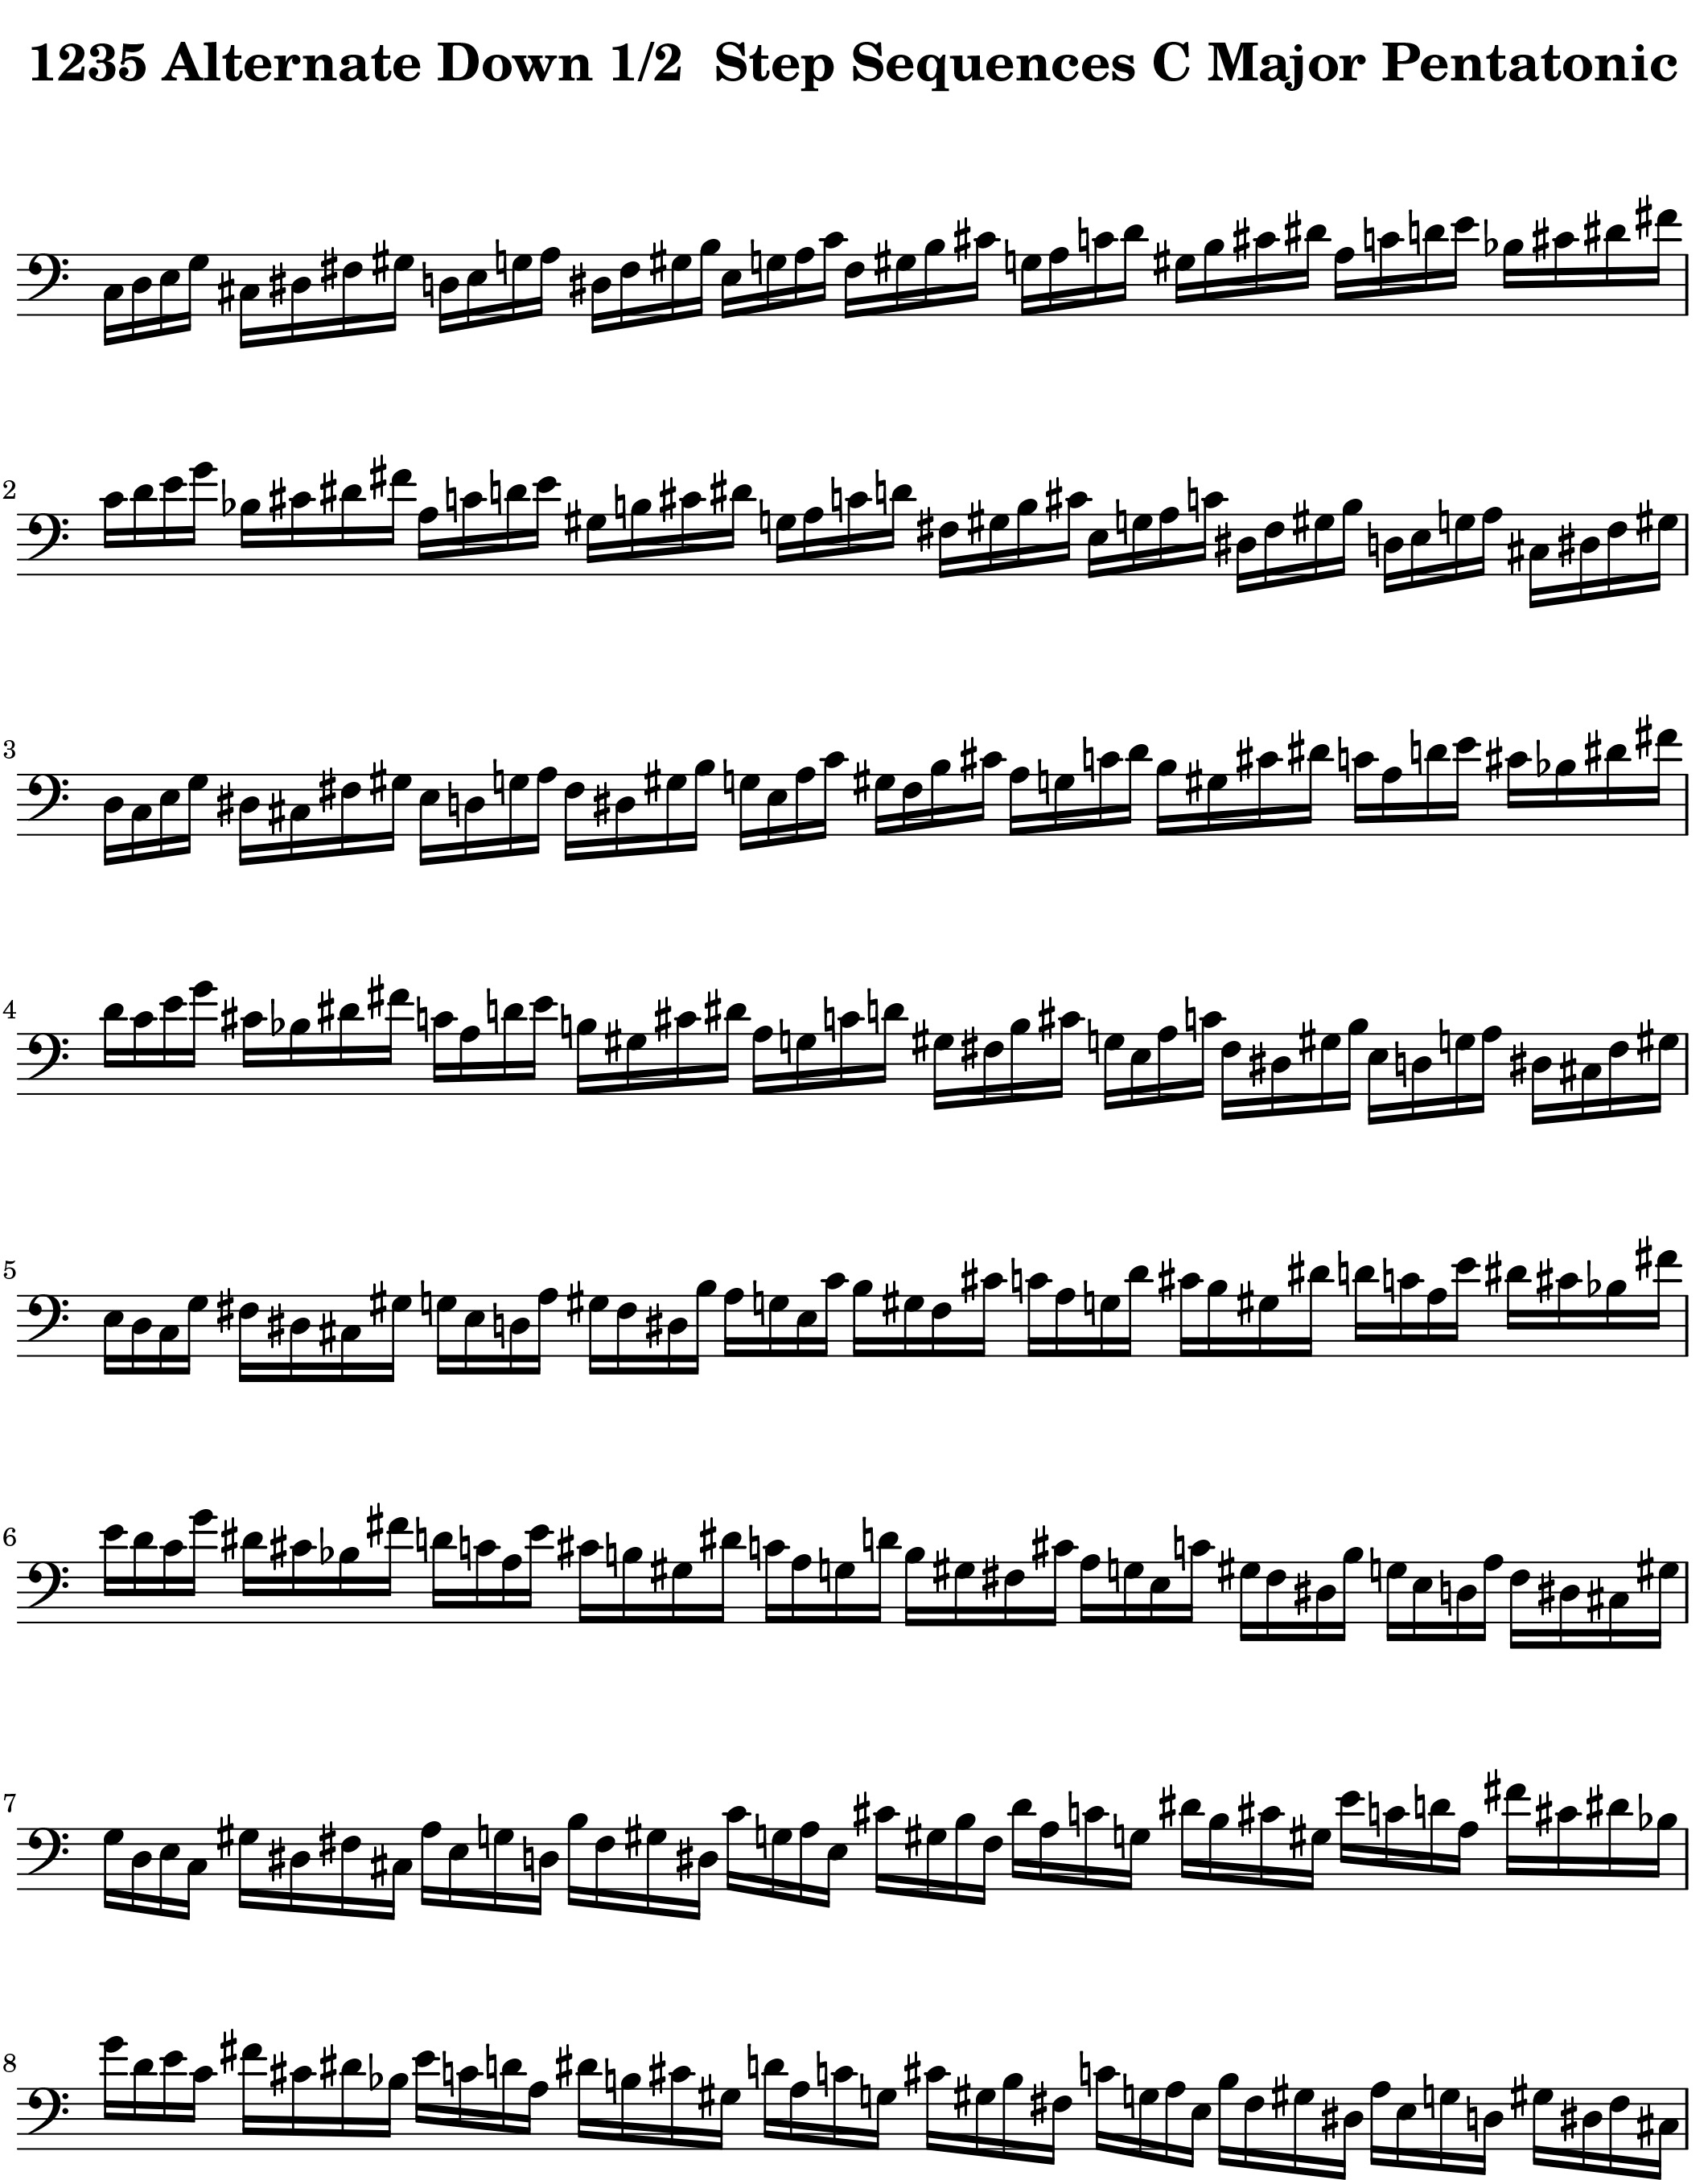 Four Note Side_Stepping_Down_Half_Step-from-the_Modal_Sequence_for__Pentatonic Scale Lexicon V1 Bass Clef by Bruce Arnold for Muse Eek Publishing